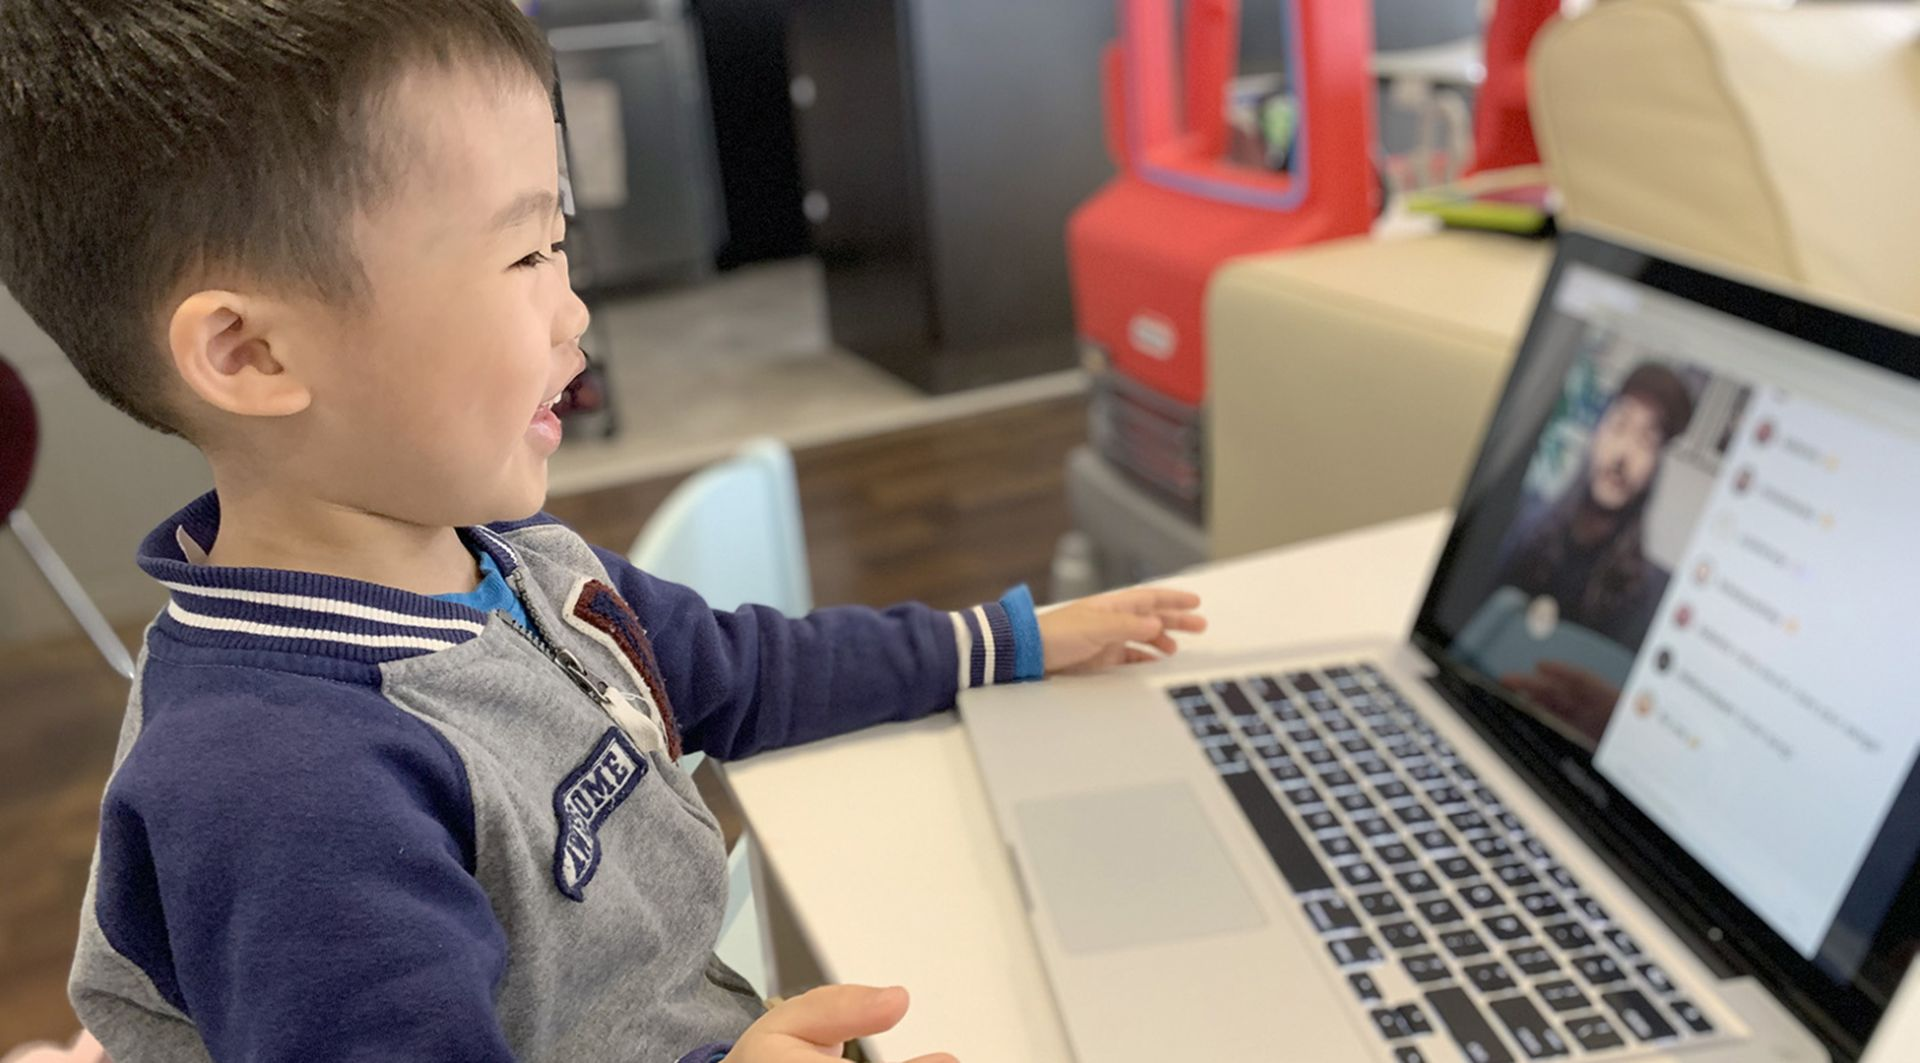 Child looking at a laptop smiling